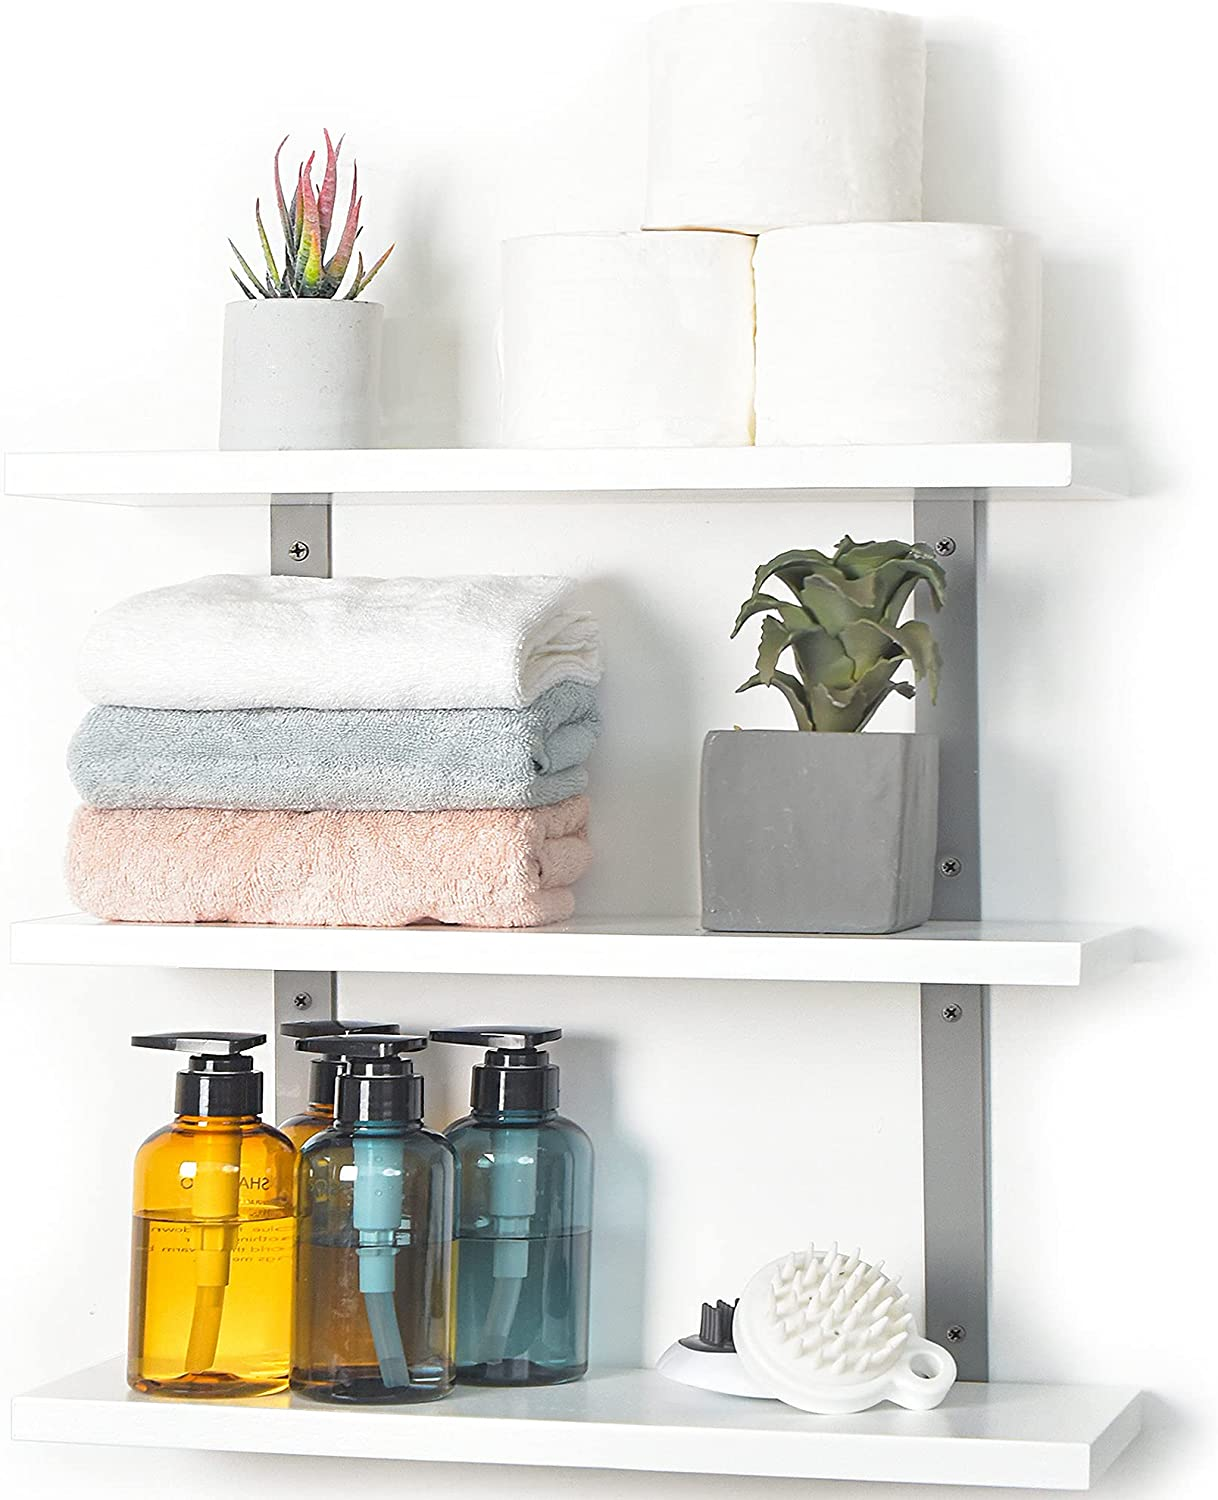 JS HOME White Floating Wall Shelves,16.9 Inches Adjustable Angle Wall Shelves, Floating Shelves Mount Wall, Hanging Wall Shelves for Bedroom, Bathroom, Living Room, Kitchen, White